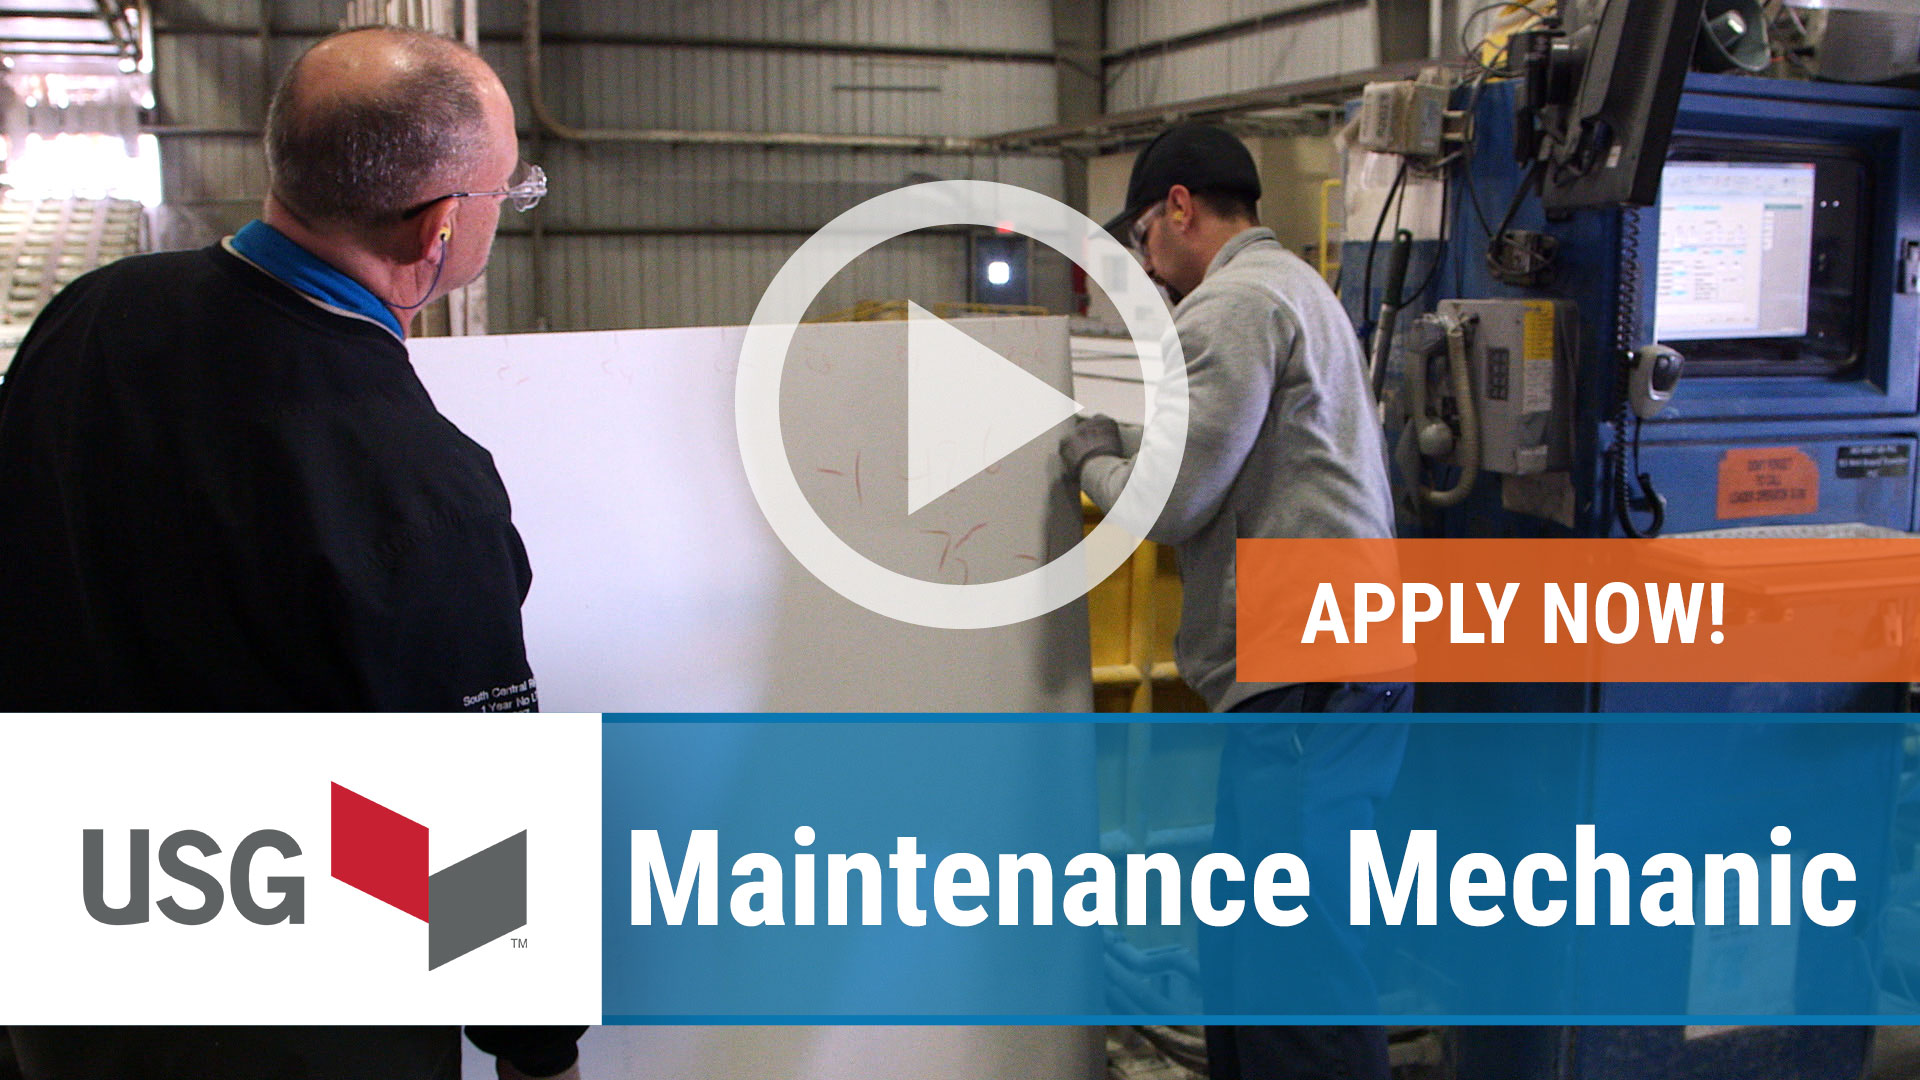 Watch our careers video for available job opening Maintenance Mechanic in El Centro, California, USA